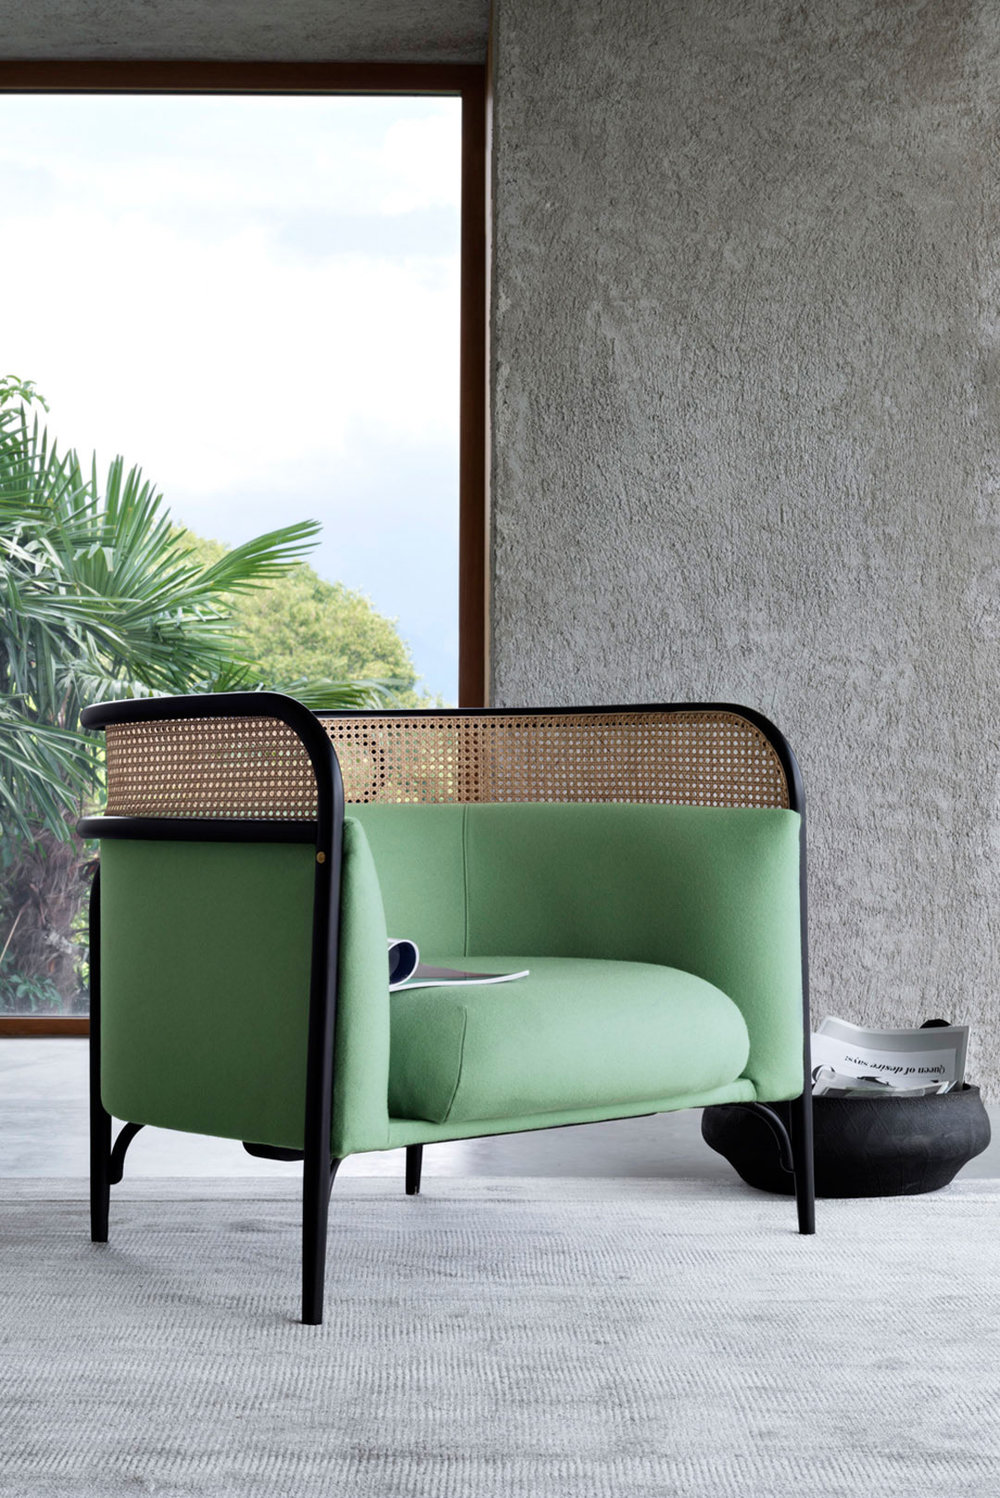 Targa Lounge by GamFratesi for Gebrüder Thonet, from Space